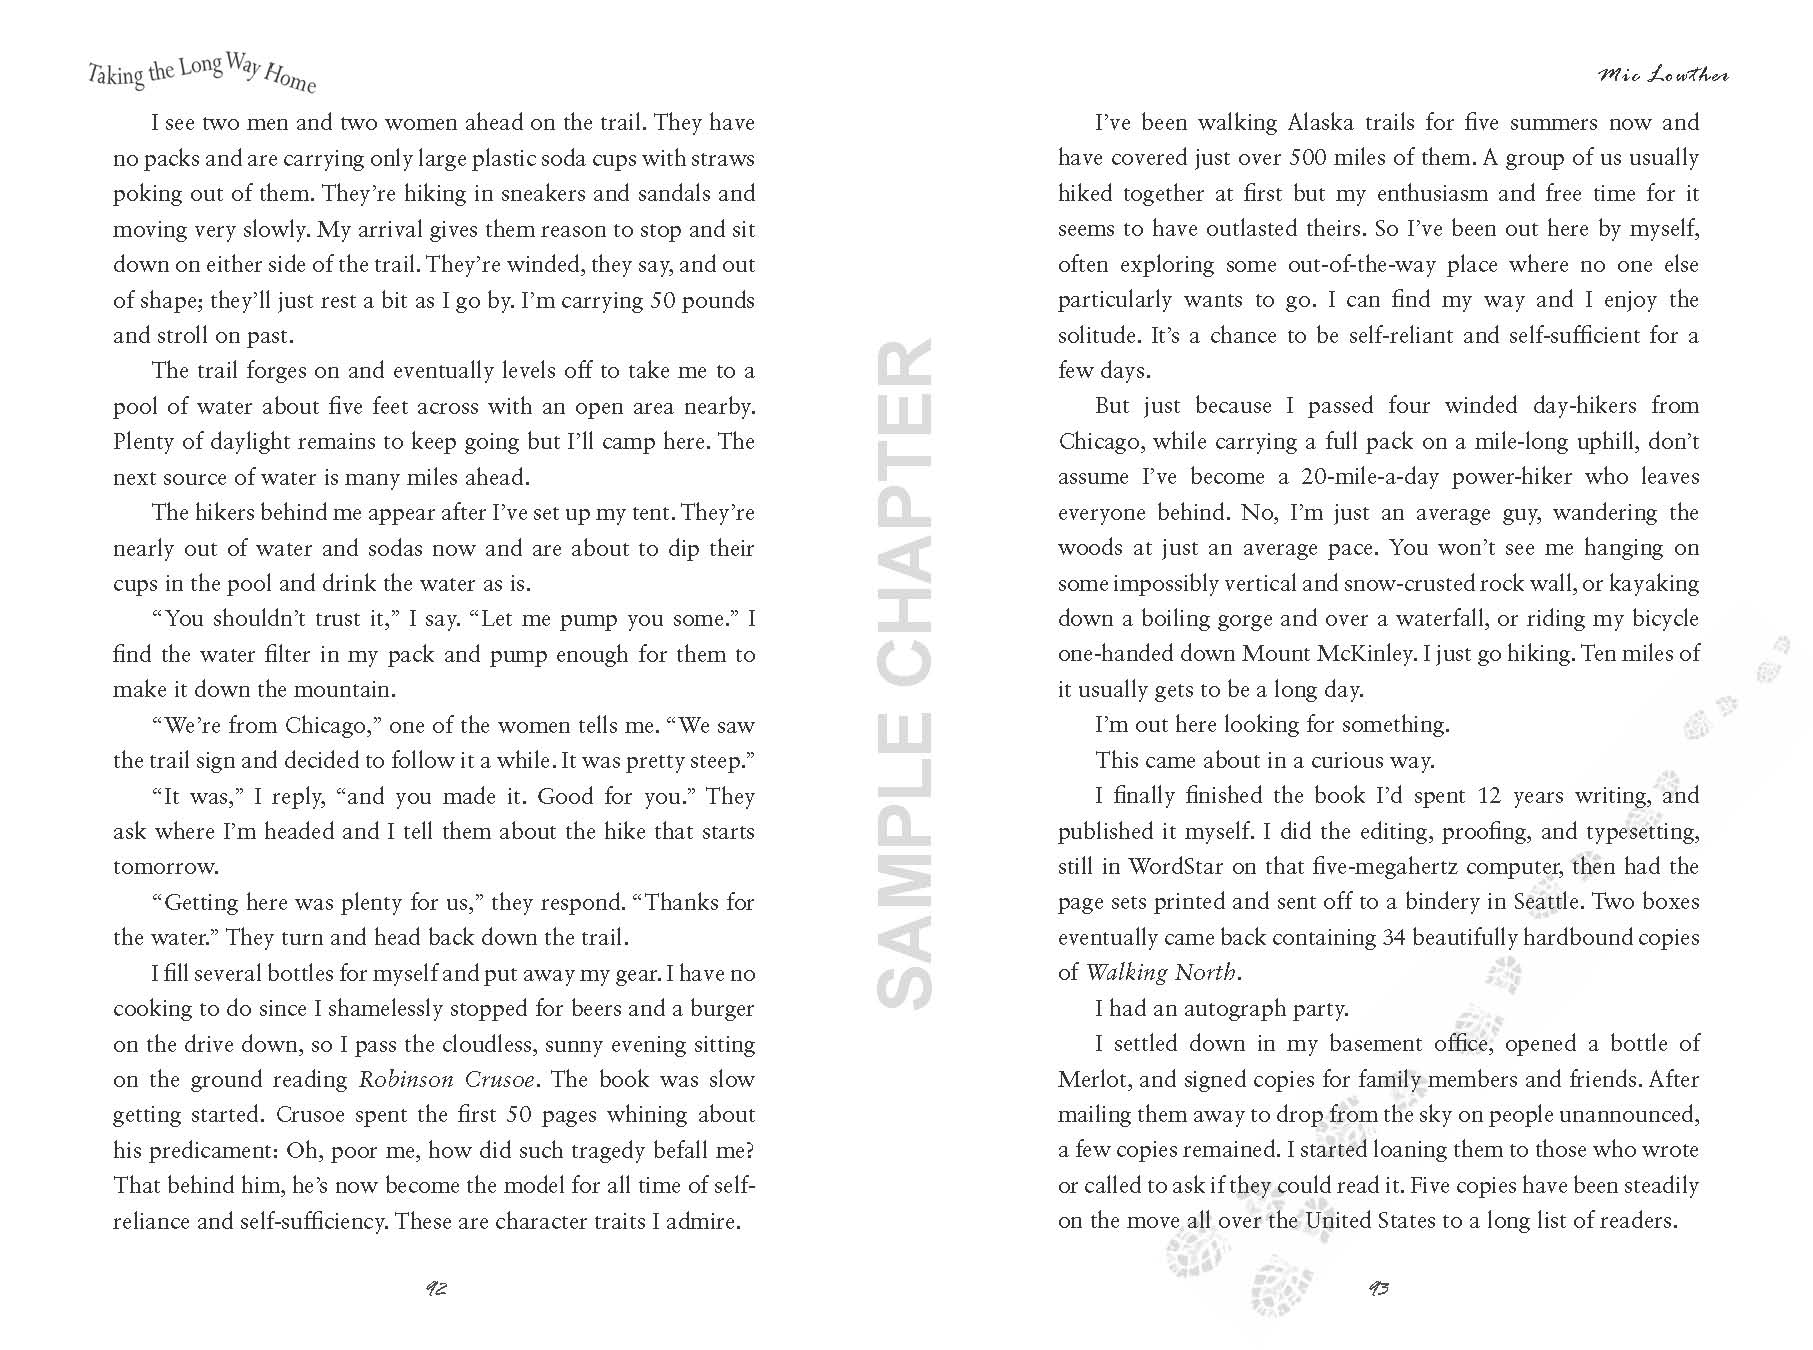 Taking The Long Way Home sample chapter pg 3 & 4